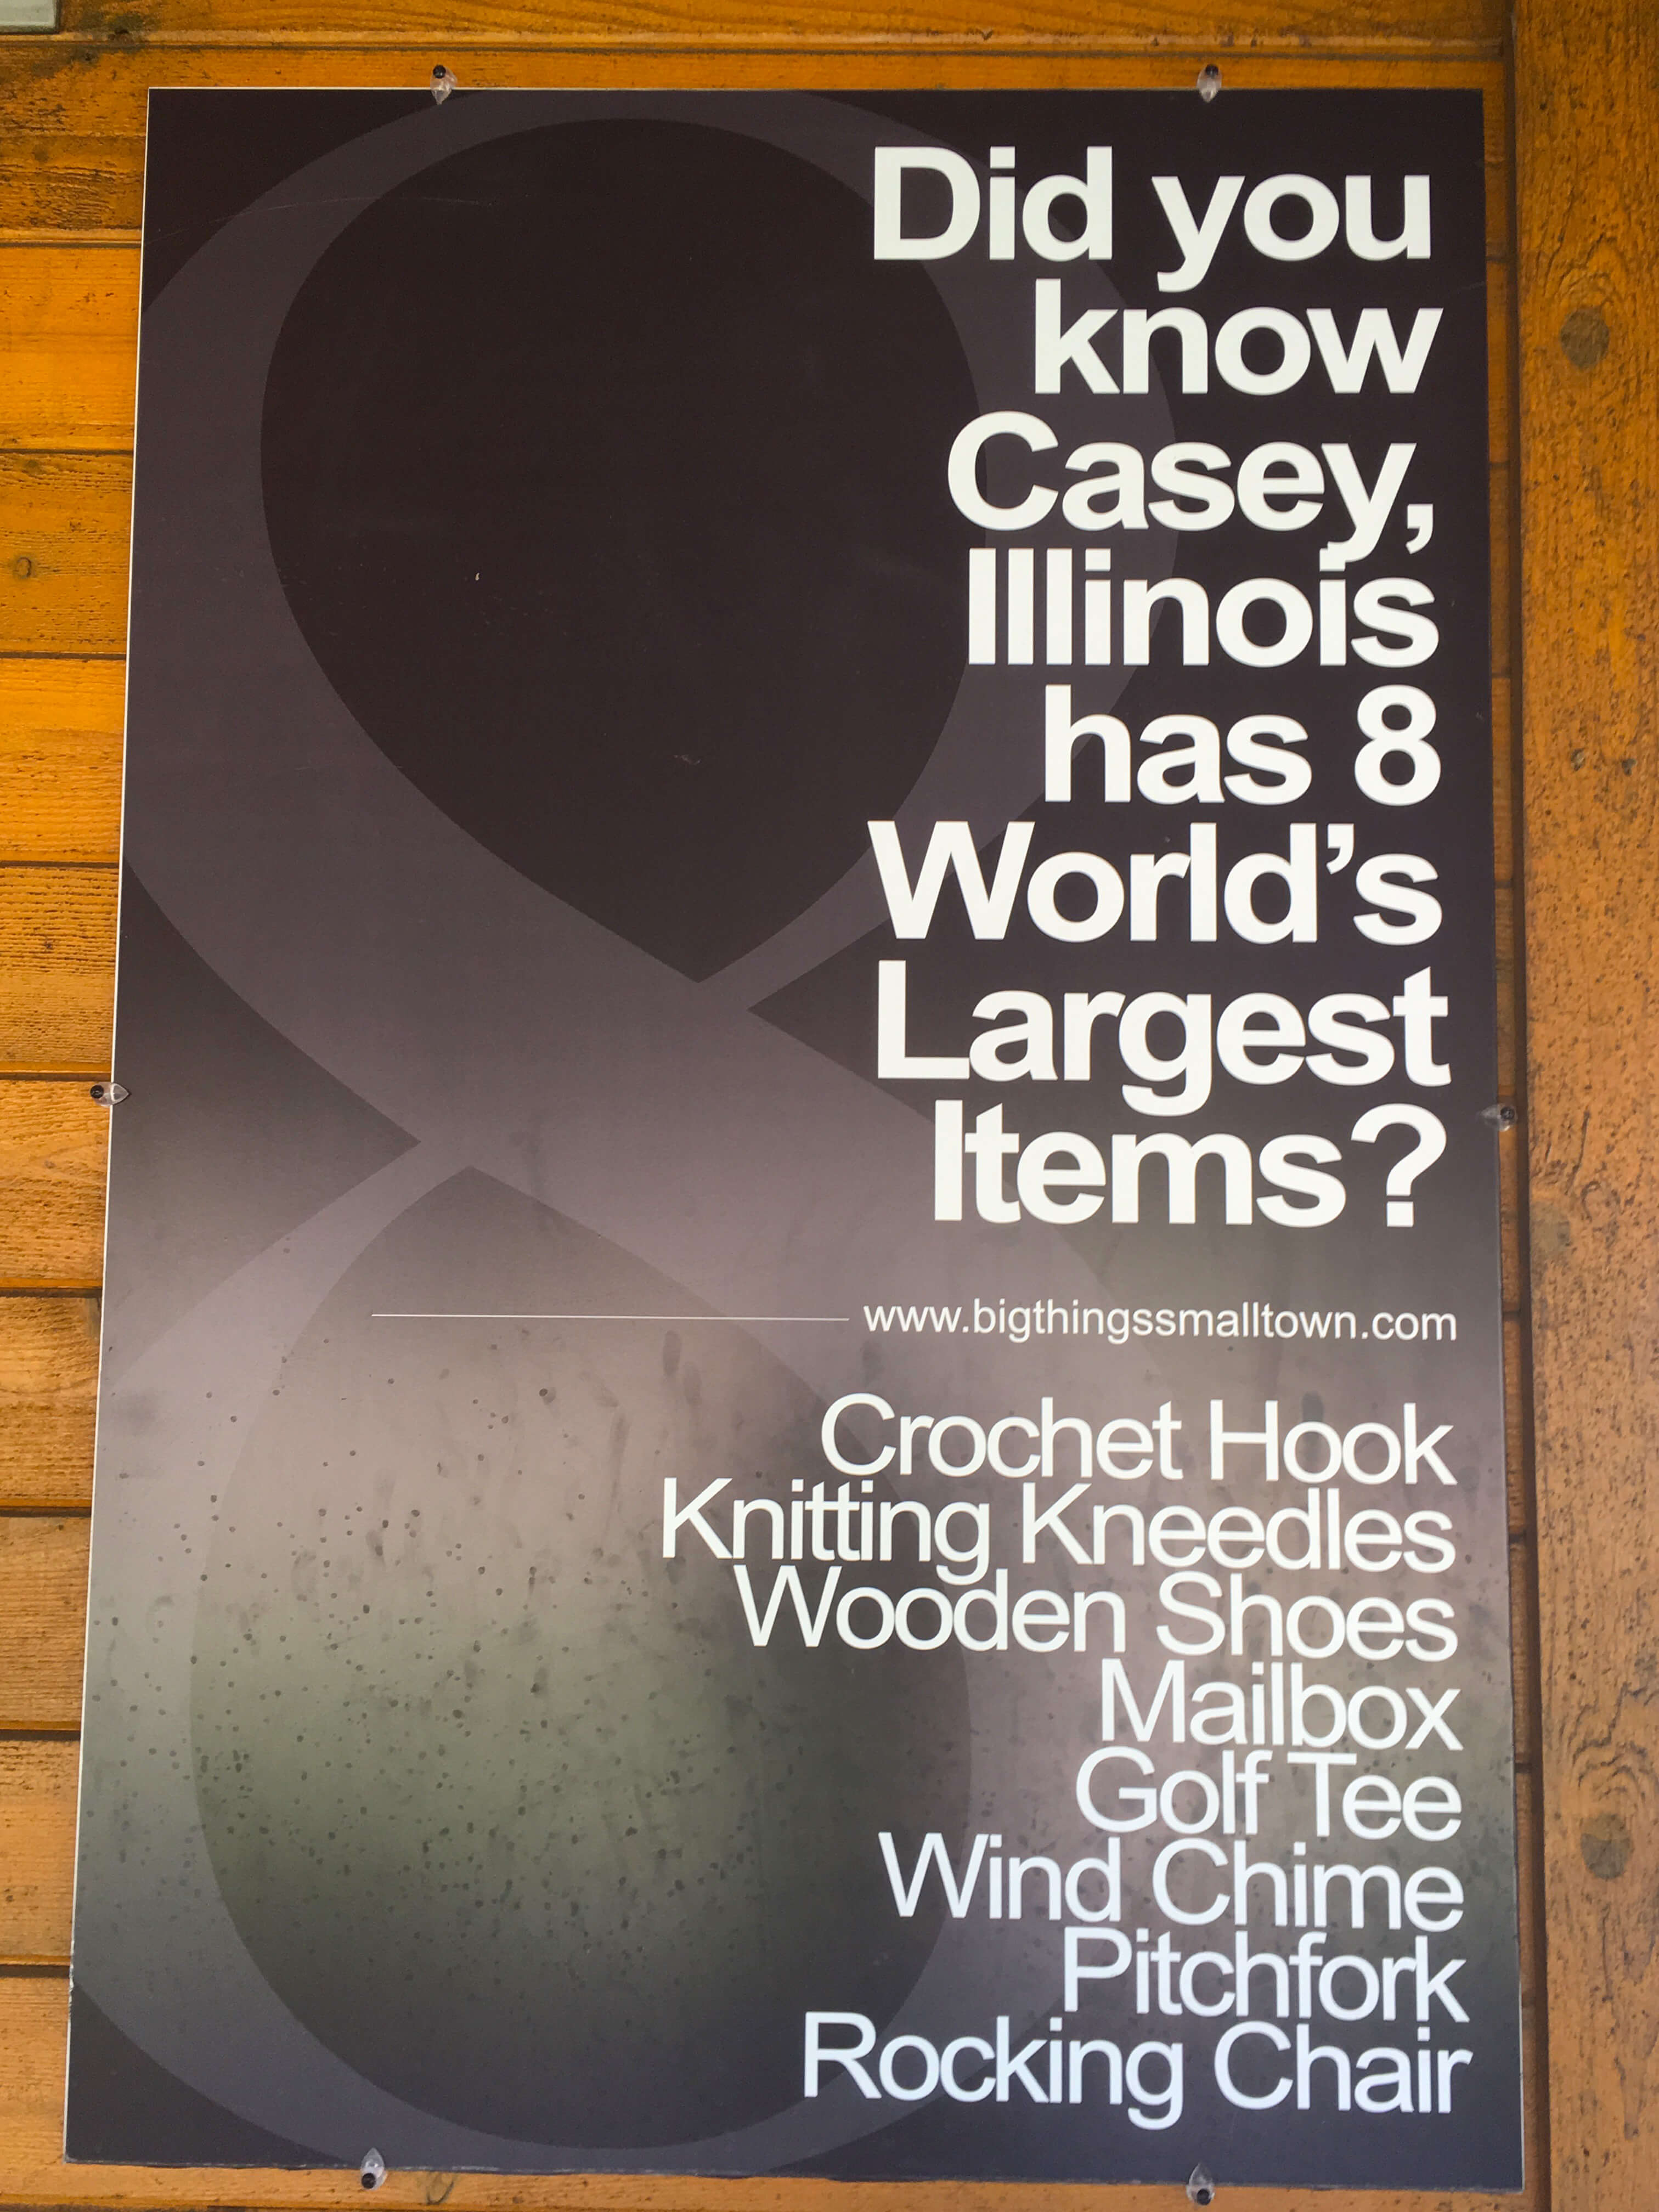 Casey Illinois sign with a list of the world's largest things in town